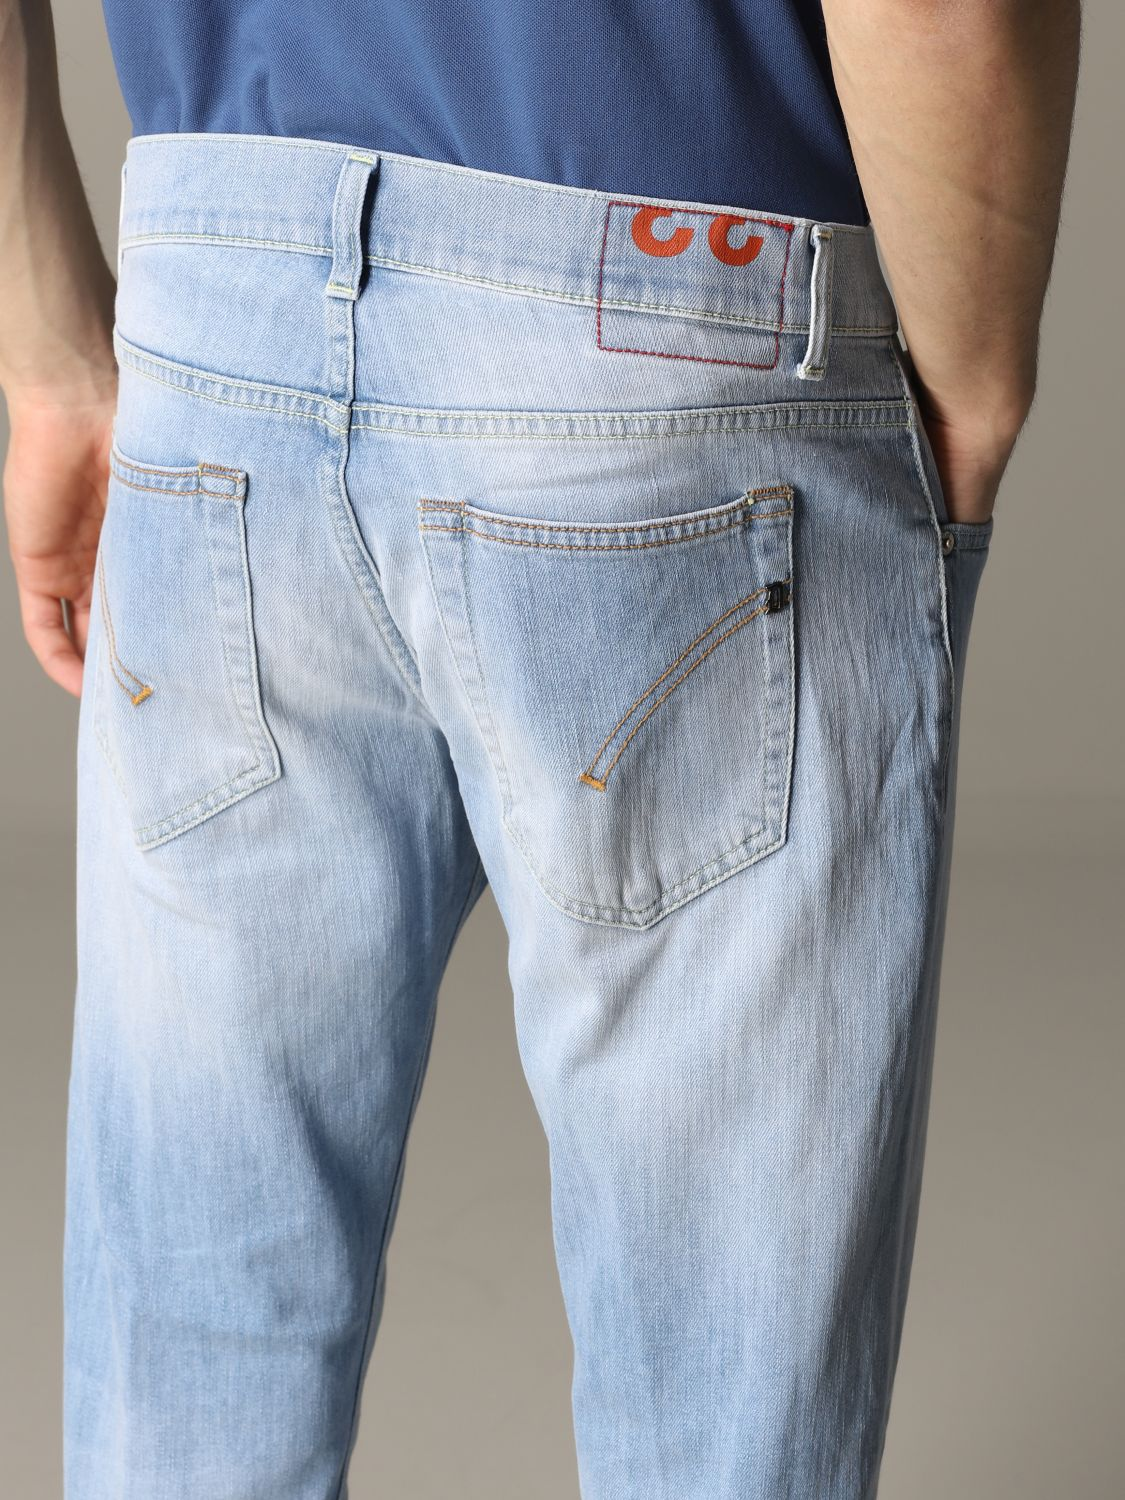 Jeans Dondup: Ritchie Dondup Slim Fit Jeans stone washed 5